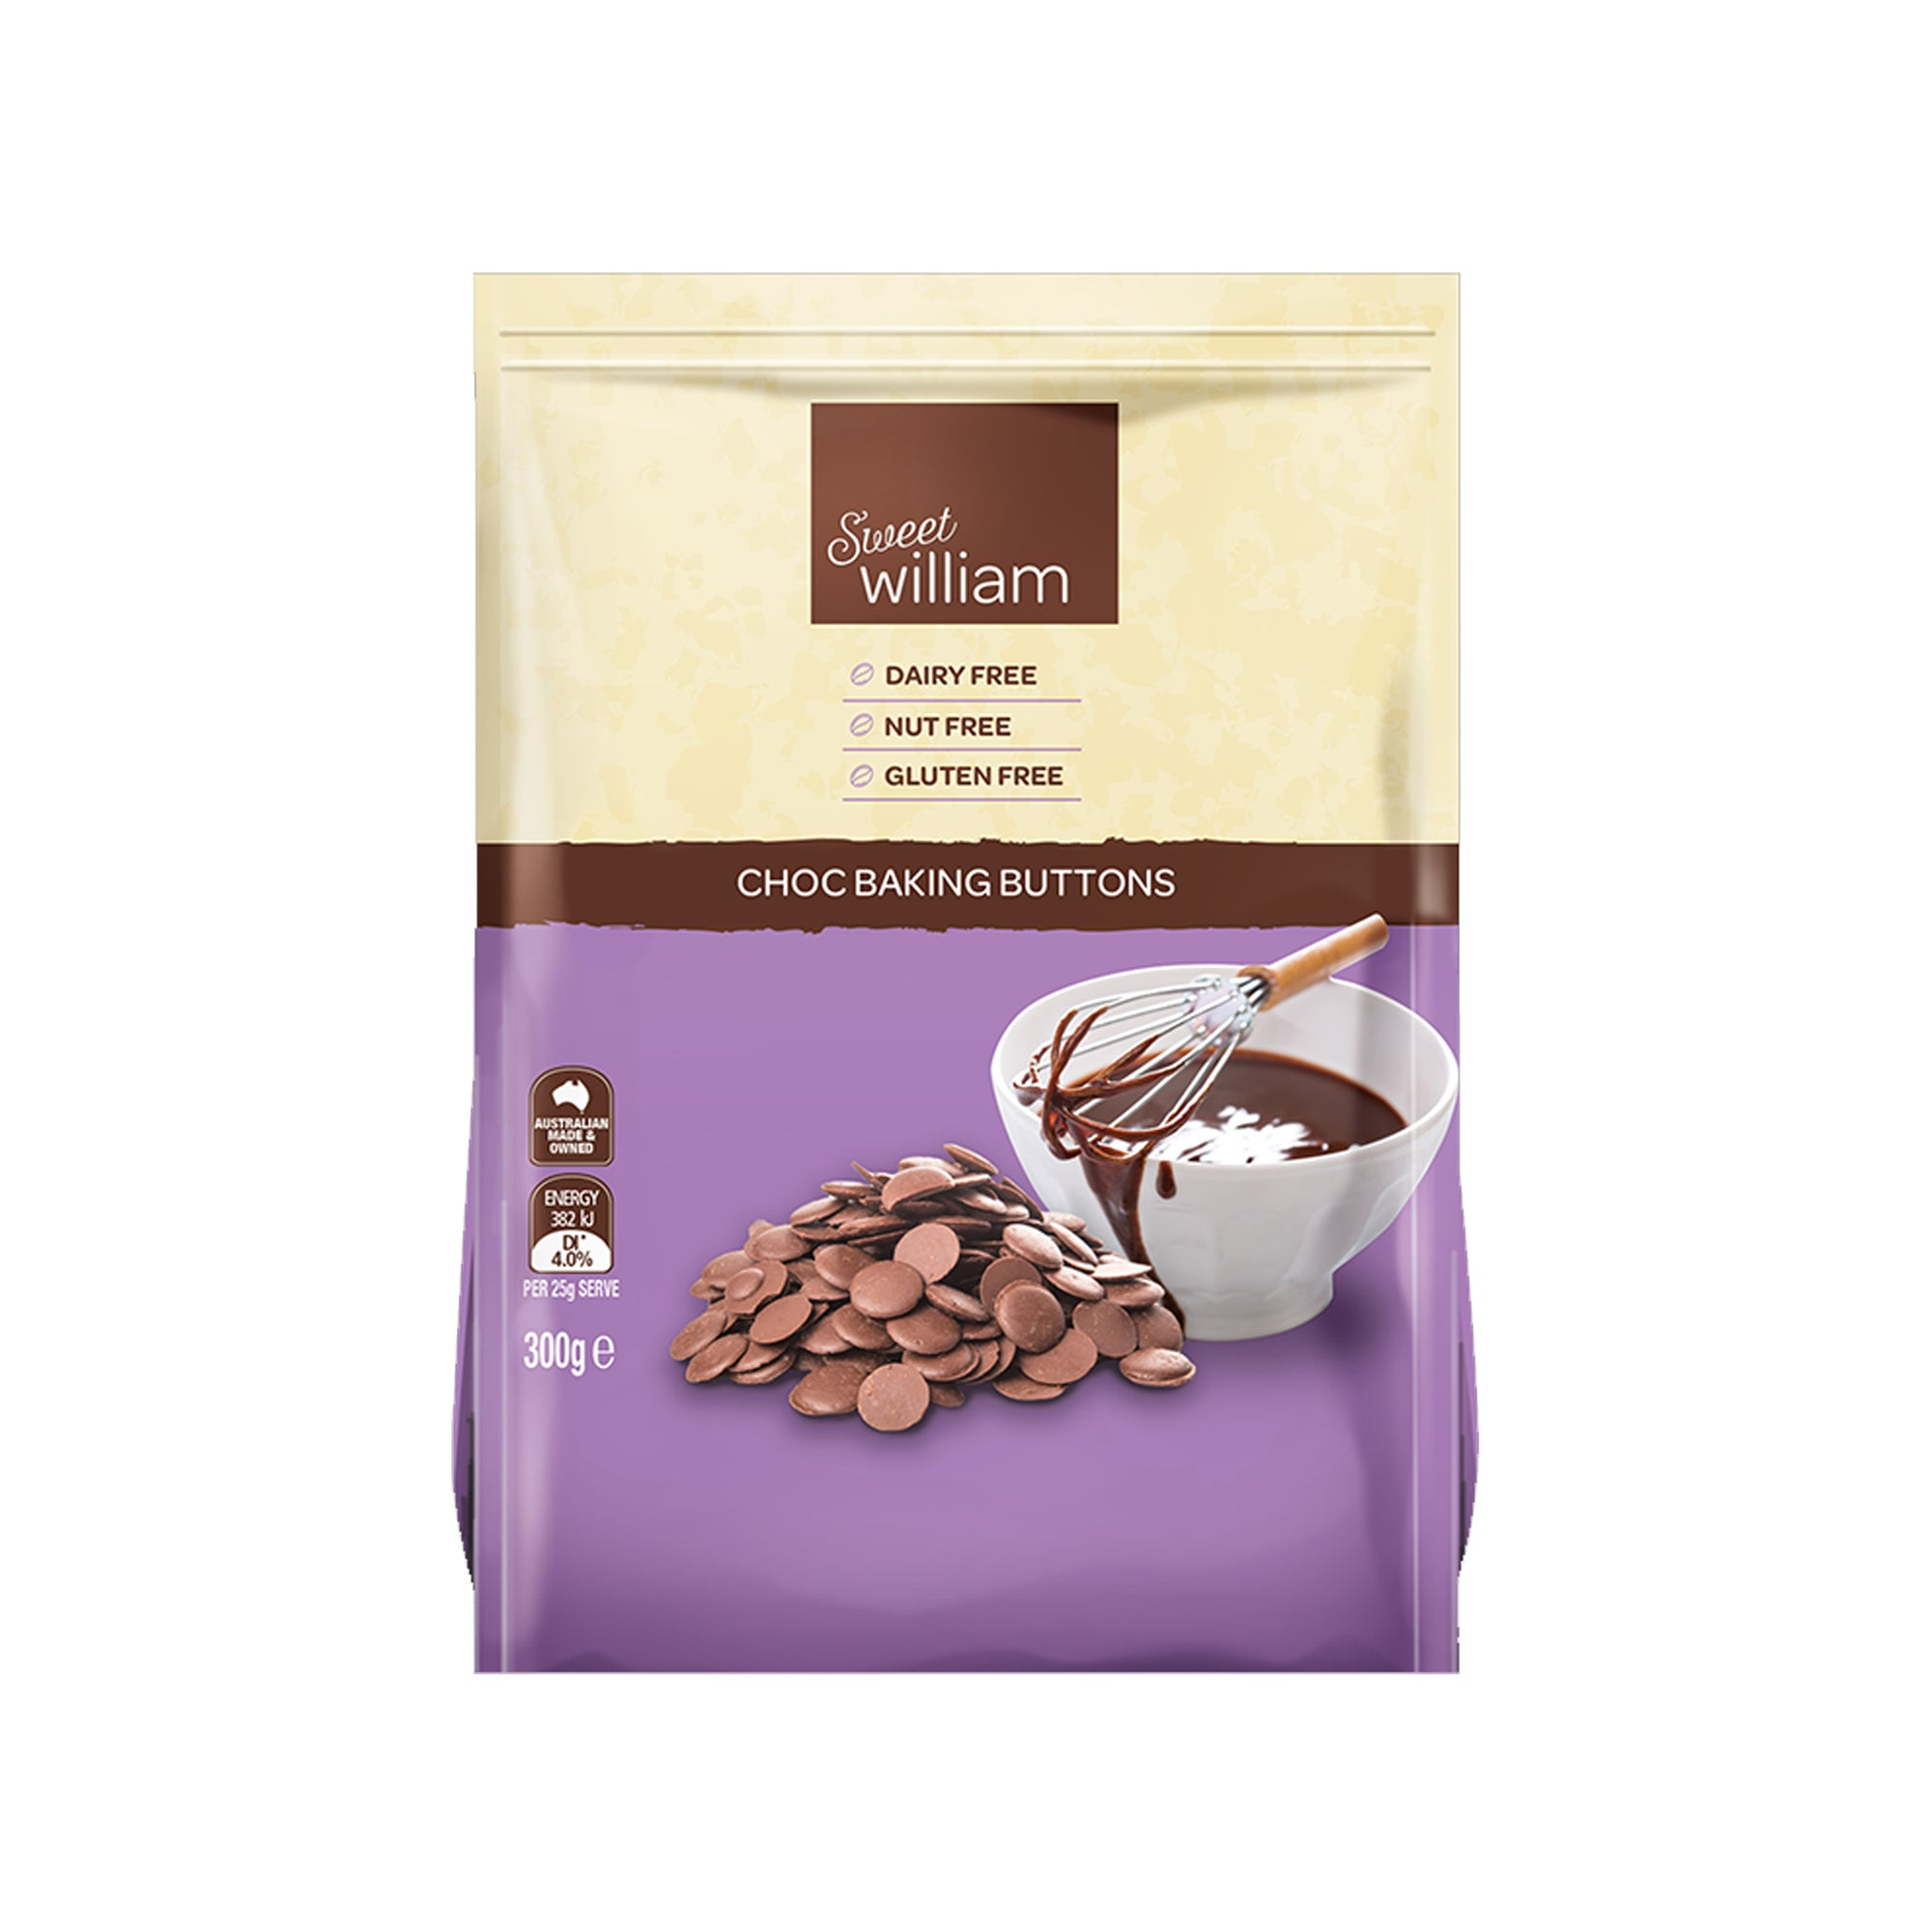 Sweet William - Original Choc Buttons 300g